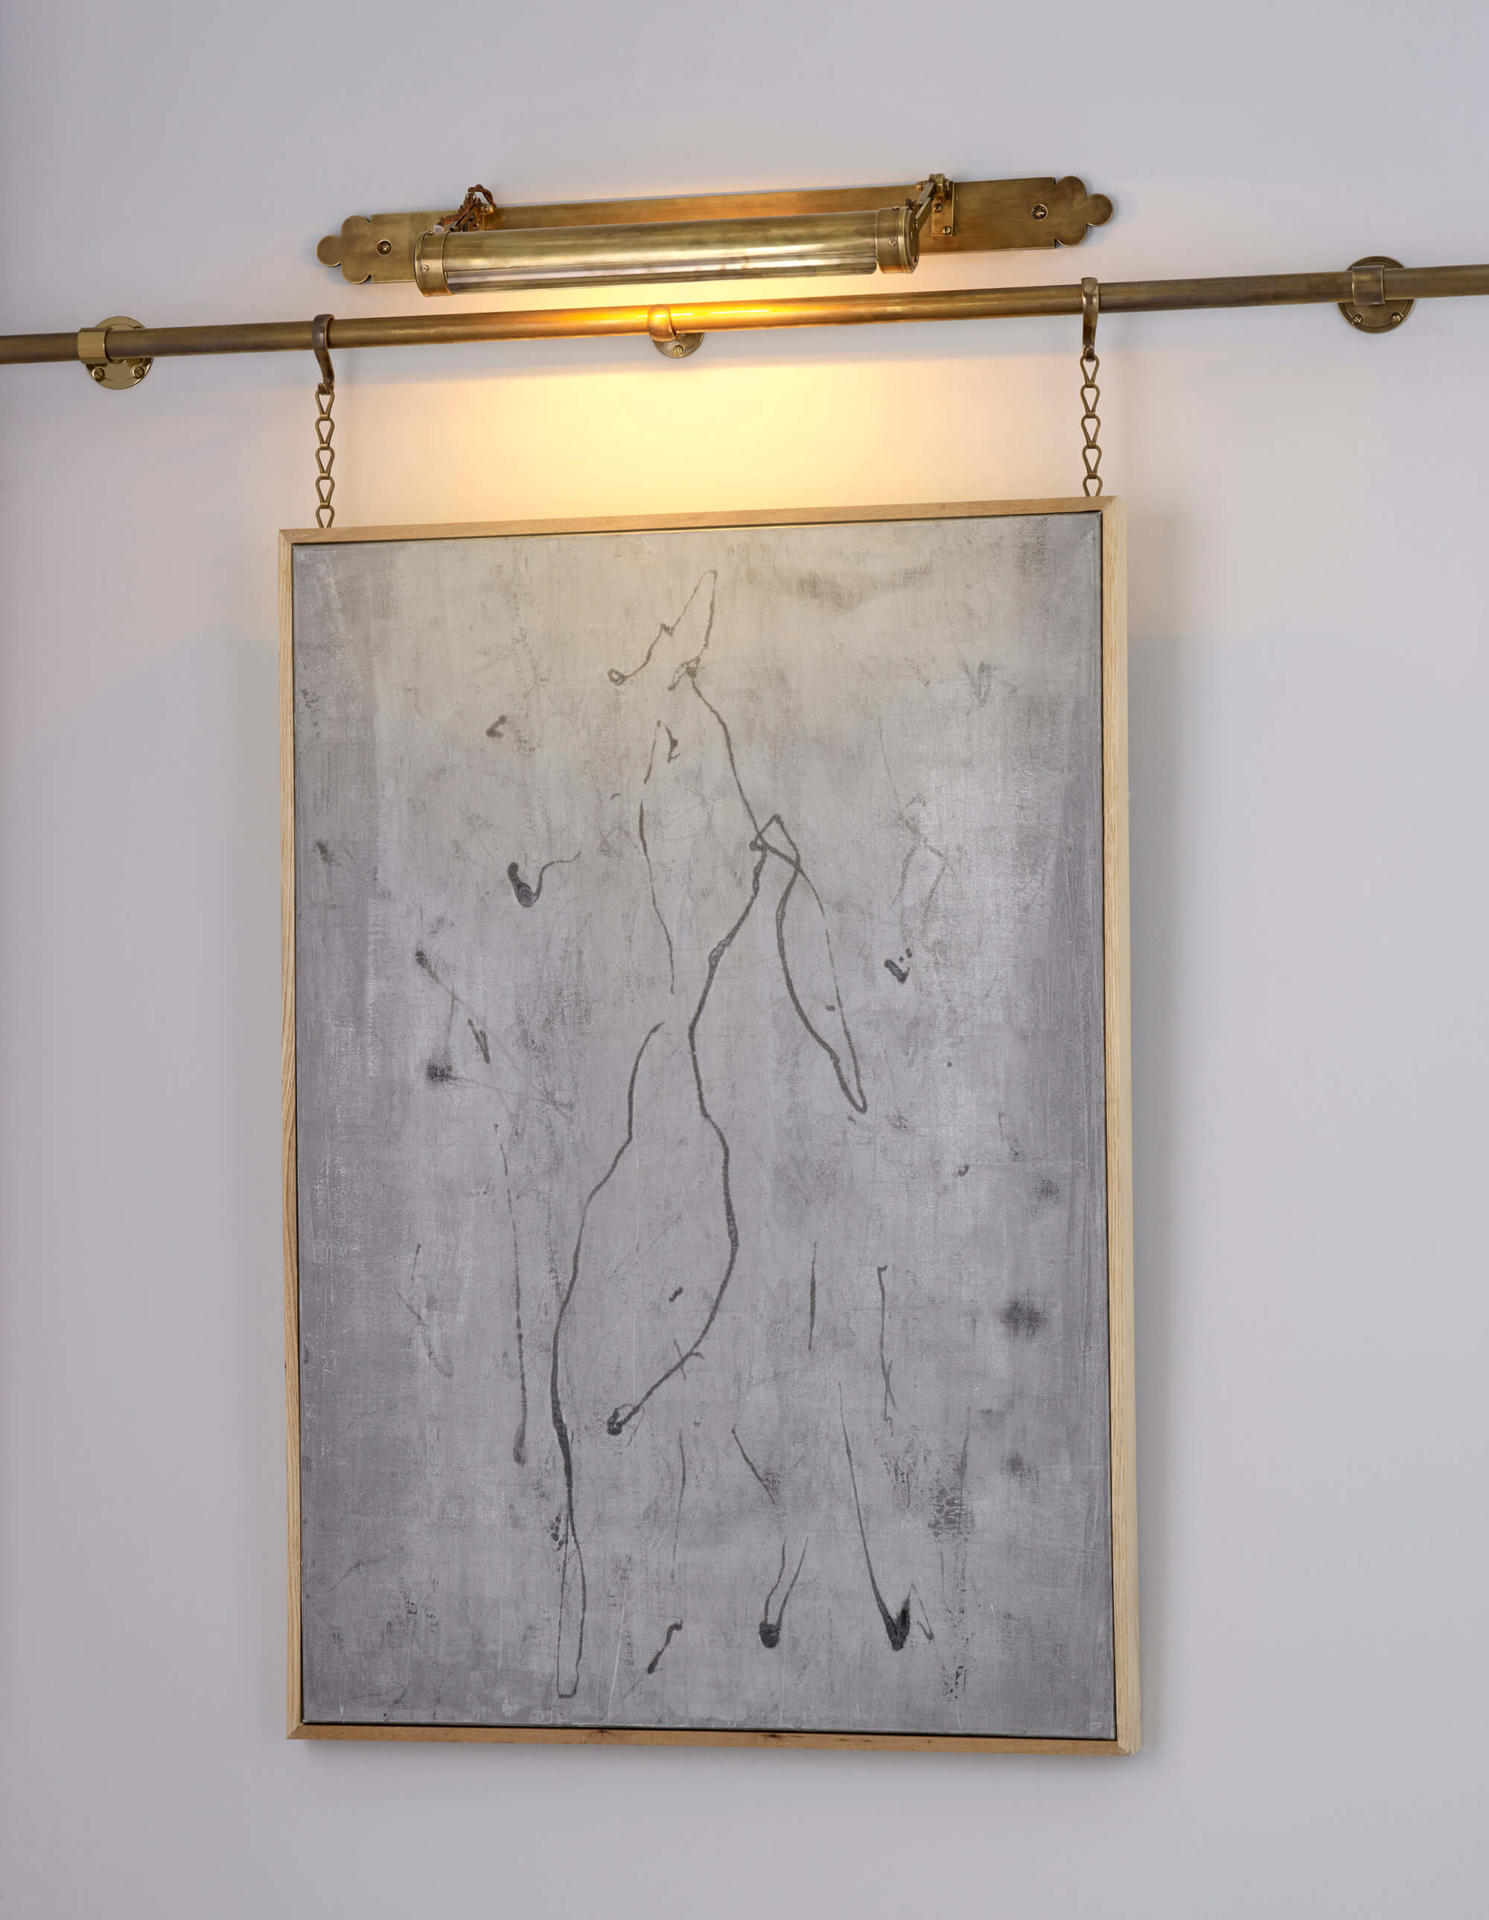 brass picture rails and picture lighting made to order by Collier Webb